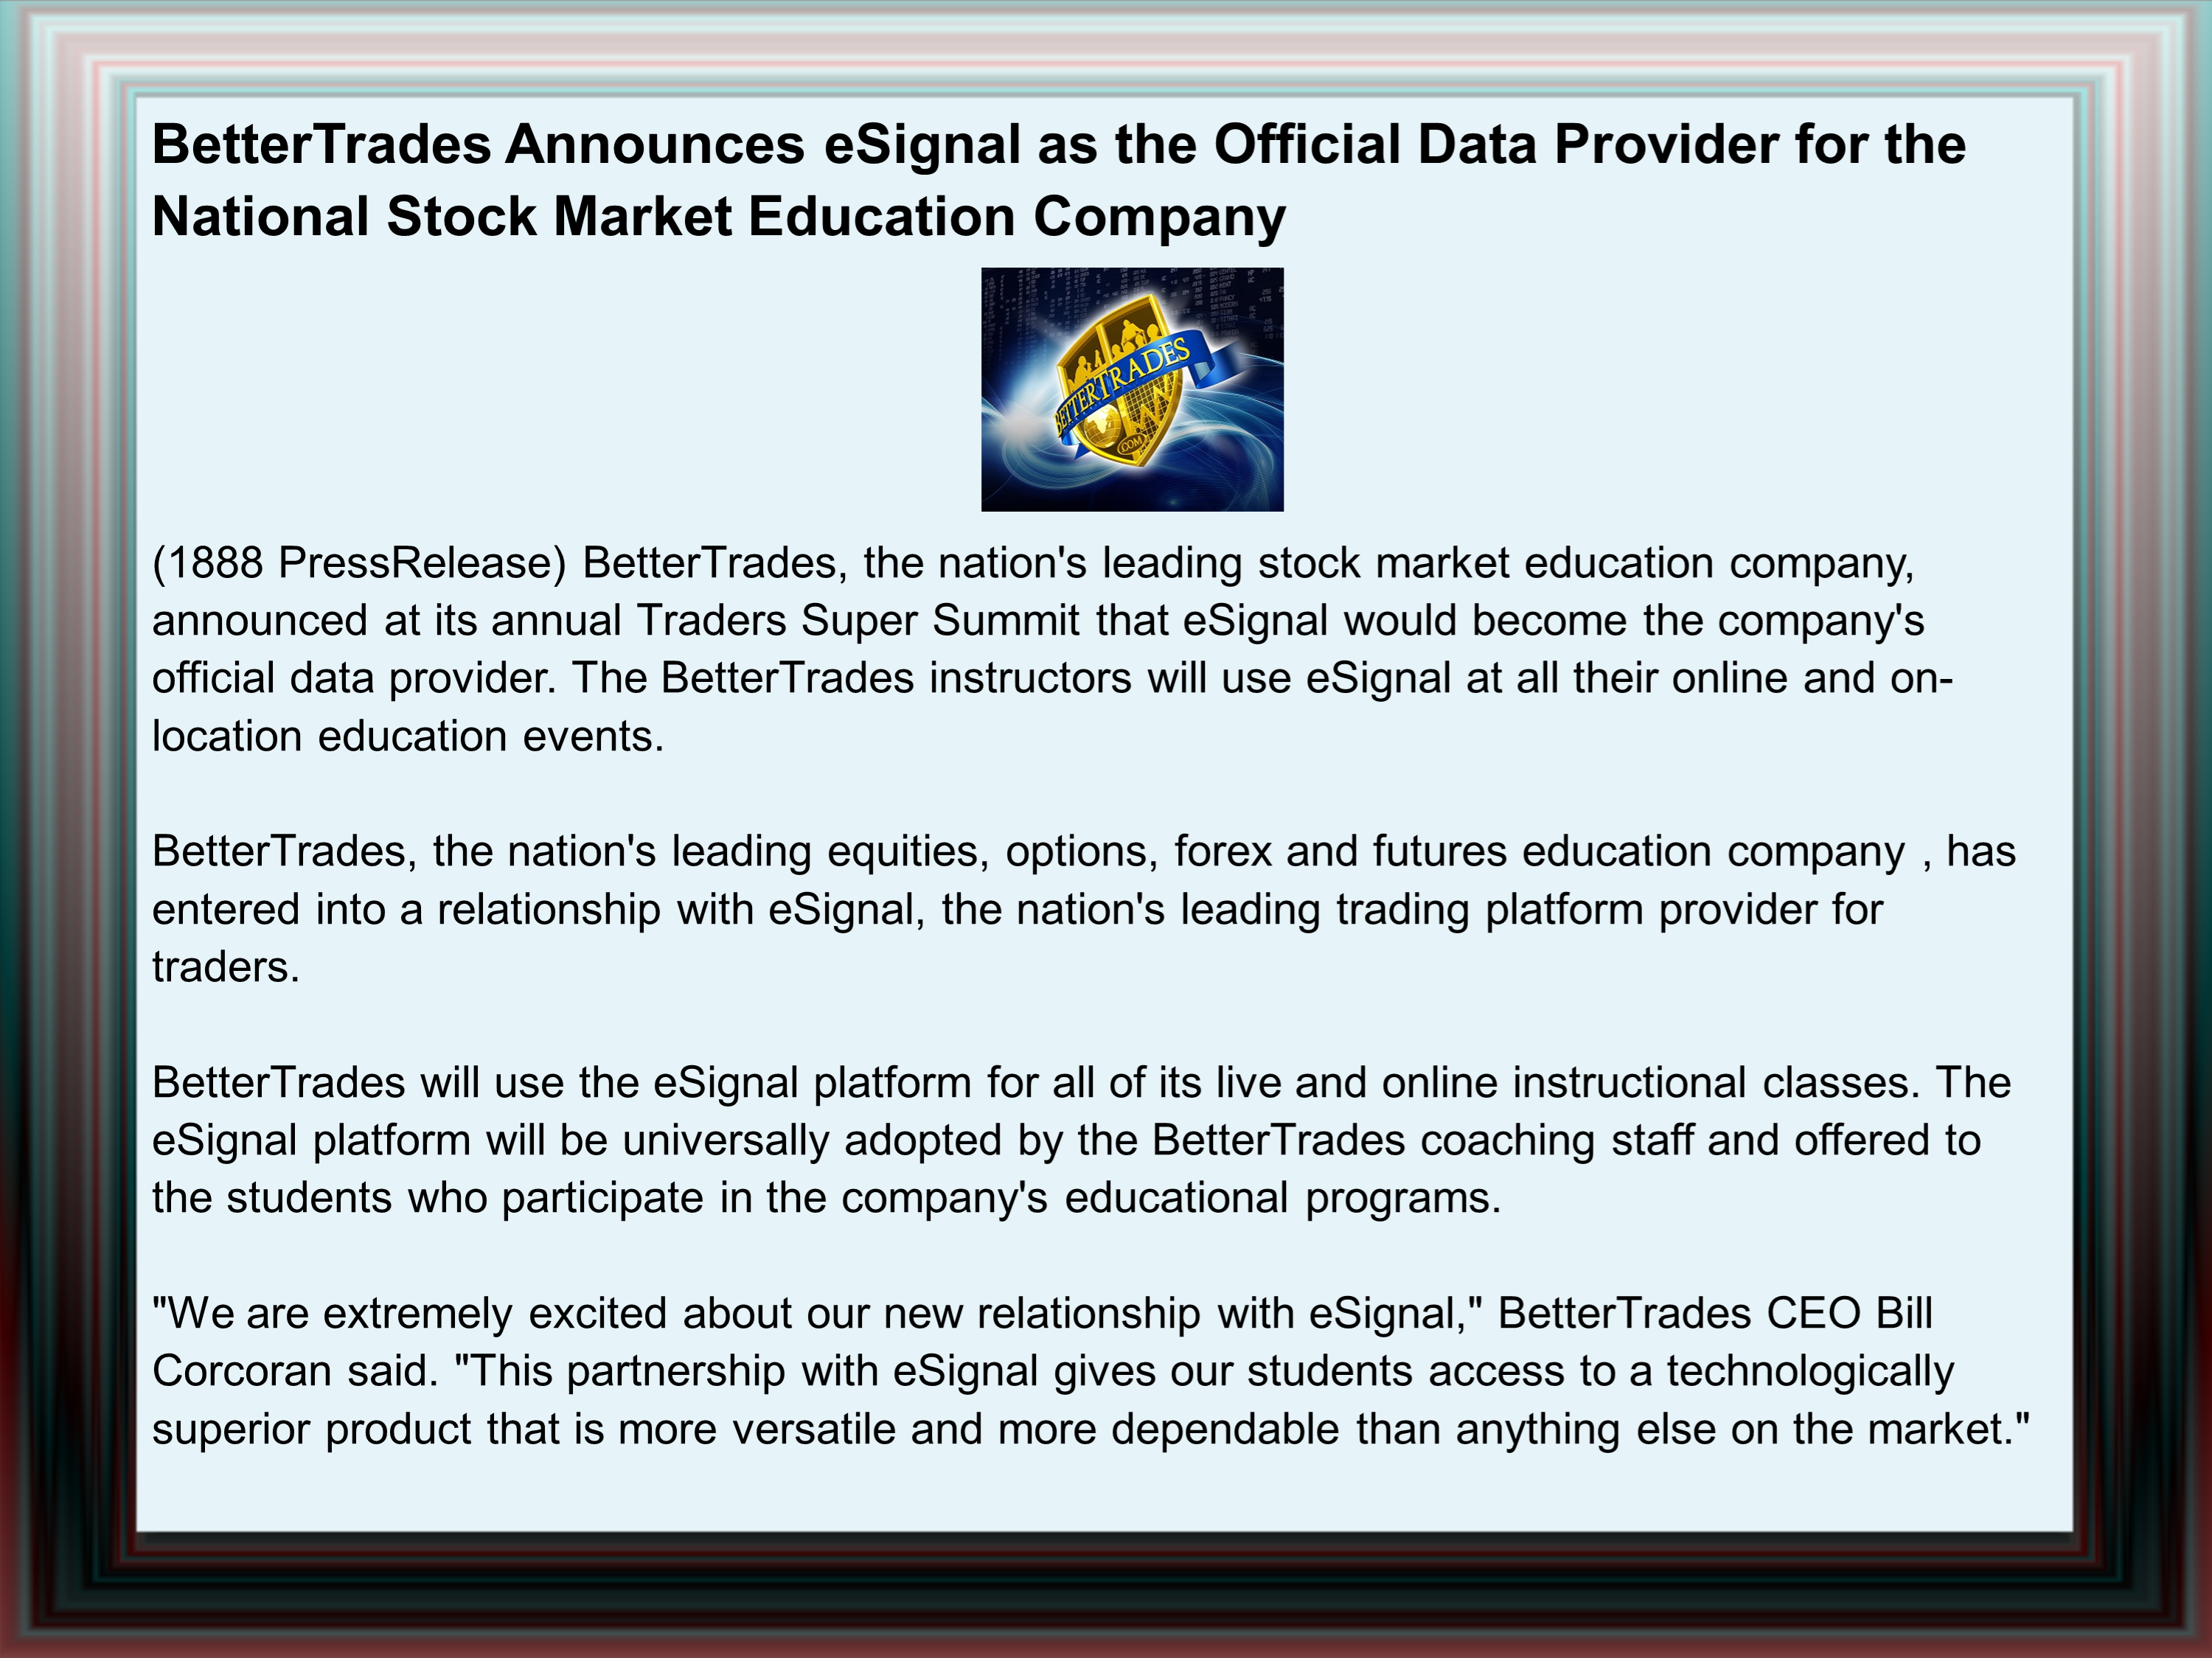 bettertrades announces esignal as the official Bettertrades announces esignal as the official data provider for the national   linkedpixel announces scribblify 40 for ios - imaginative paint app - binary.